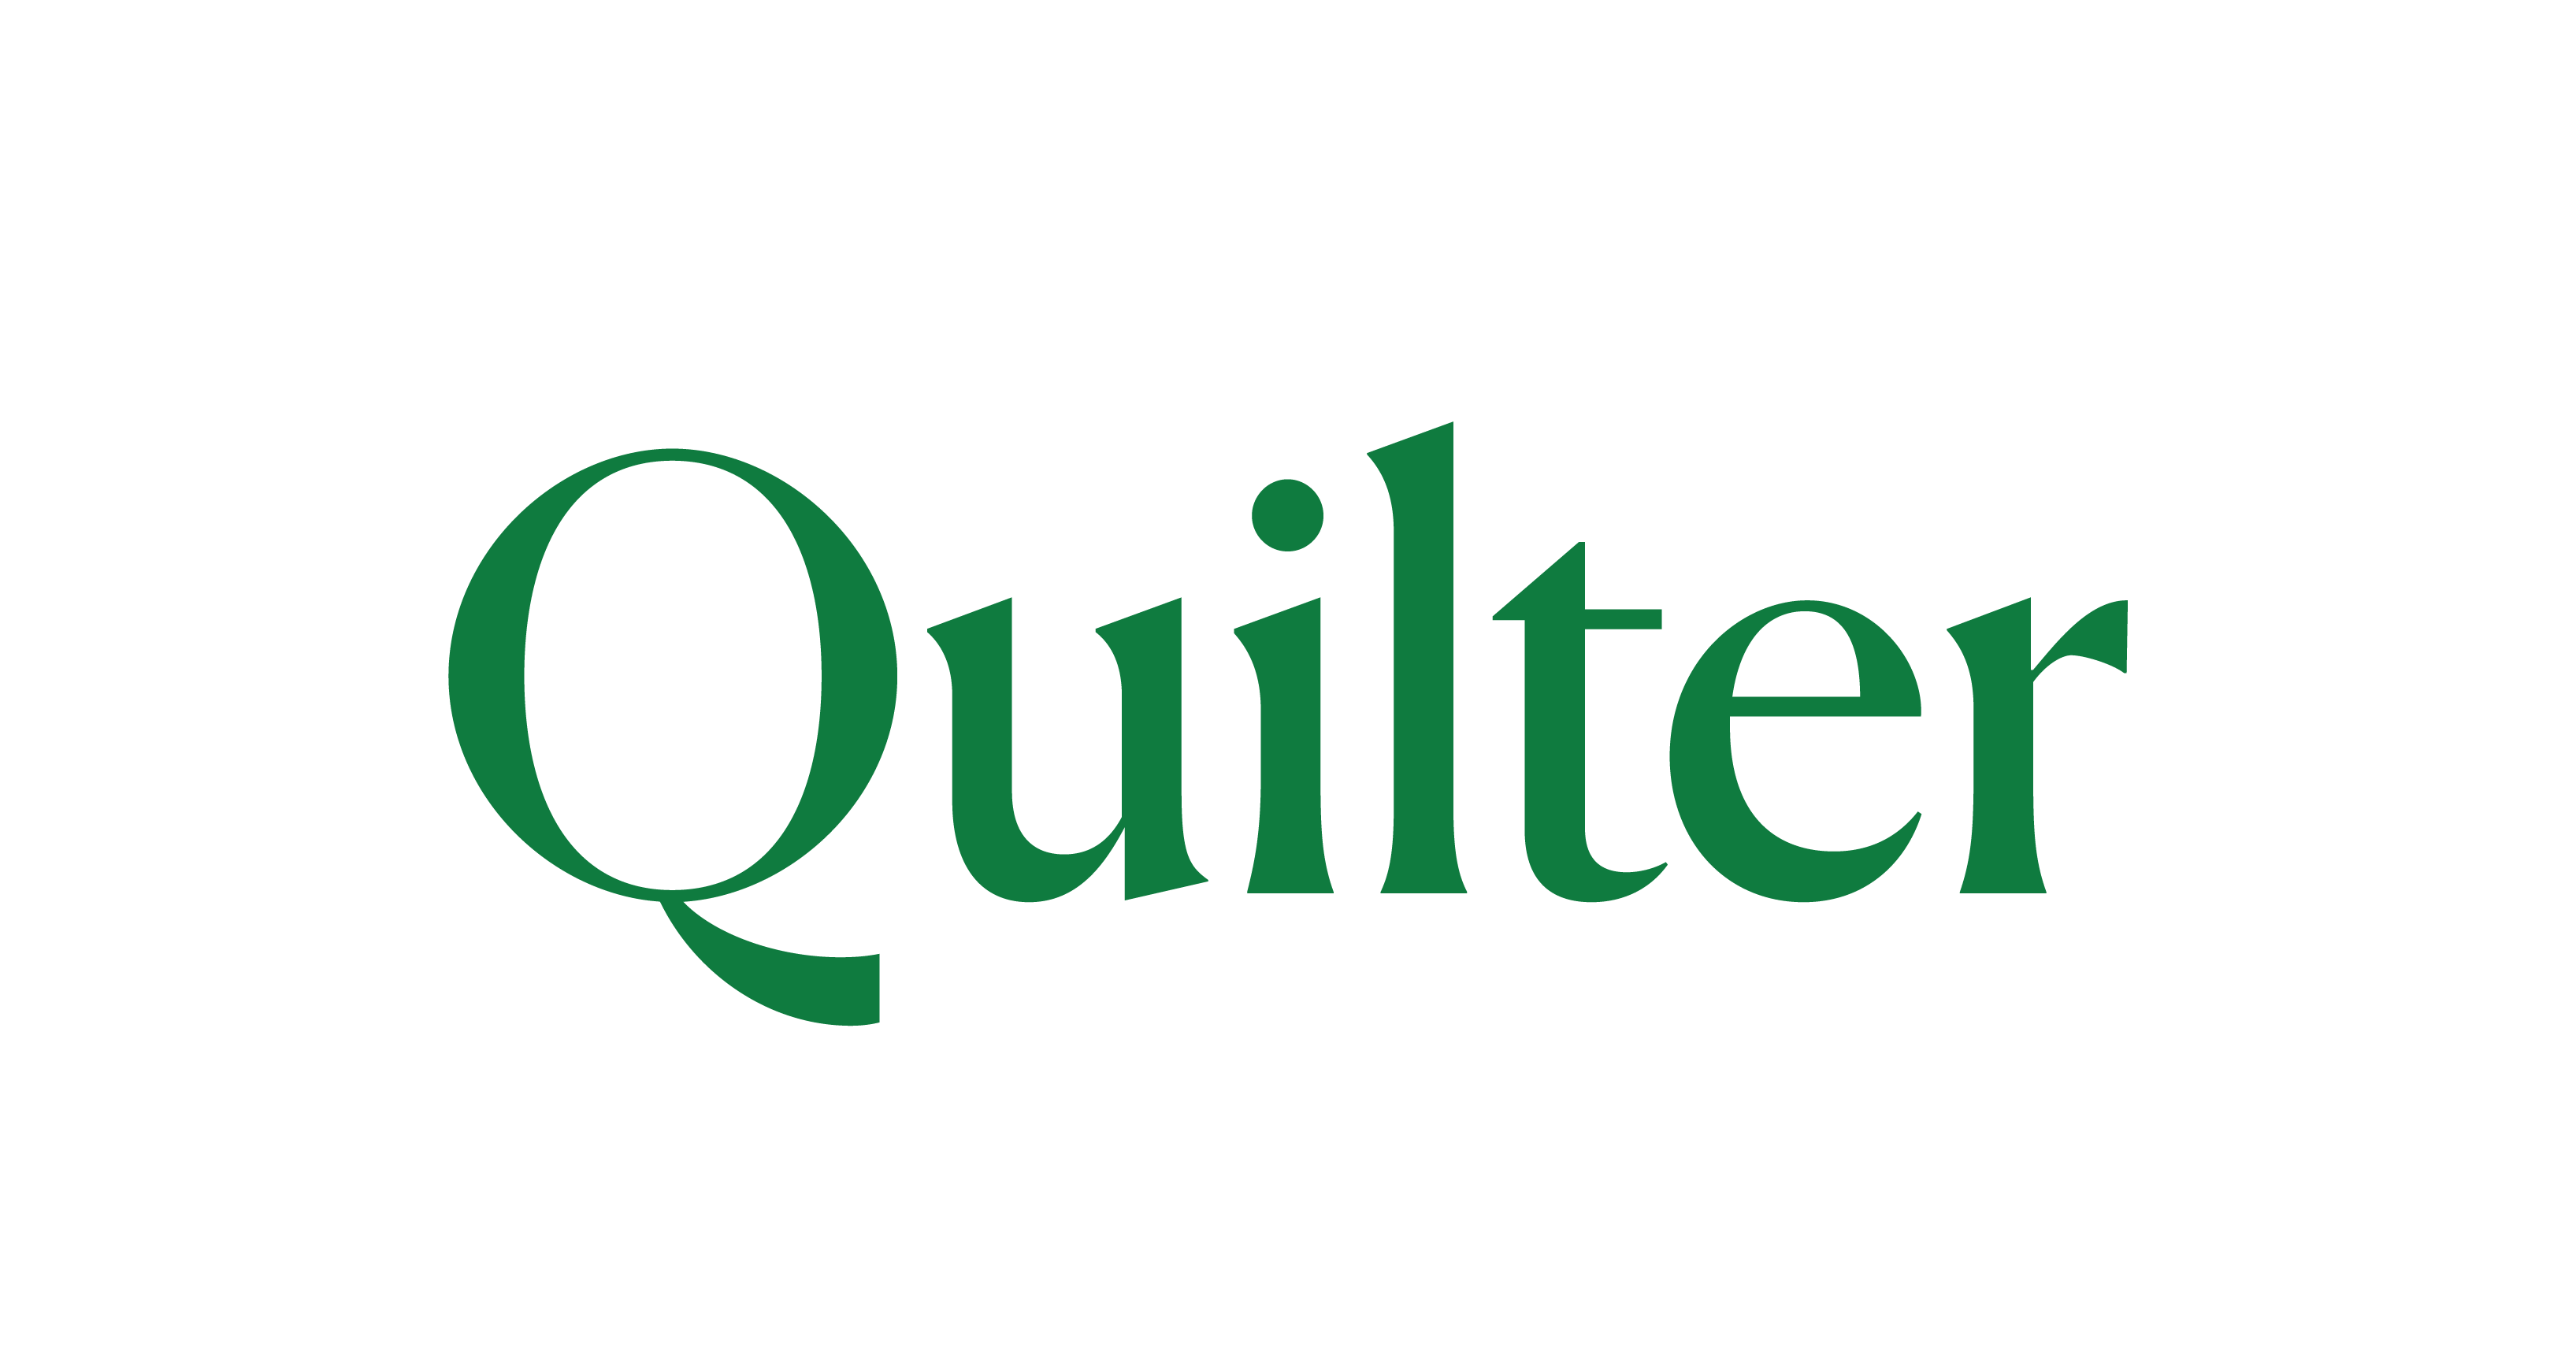 Quilter adds £211m assets with three acquisitions